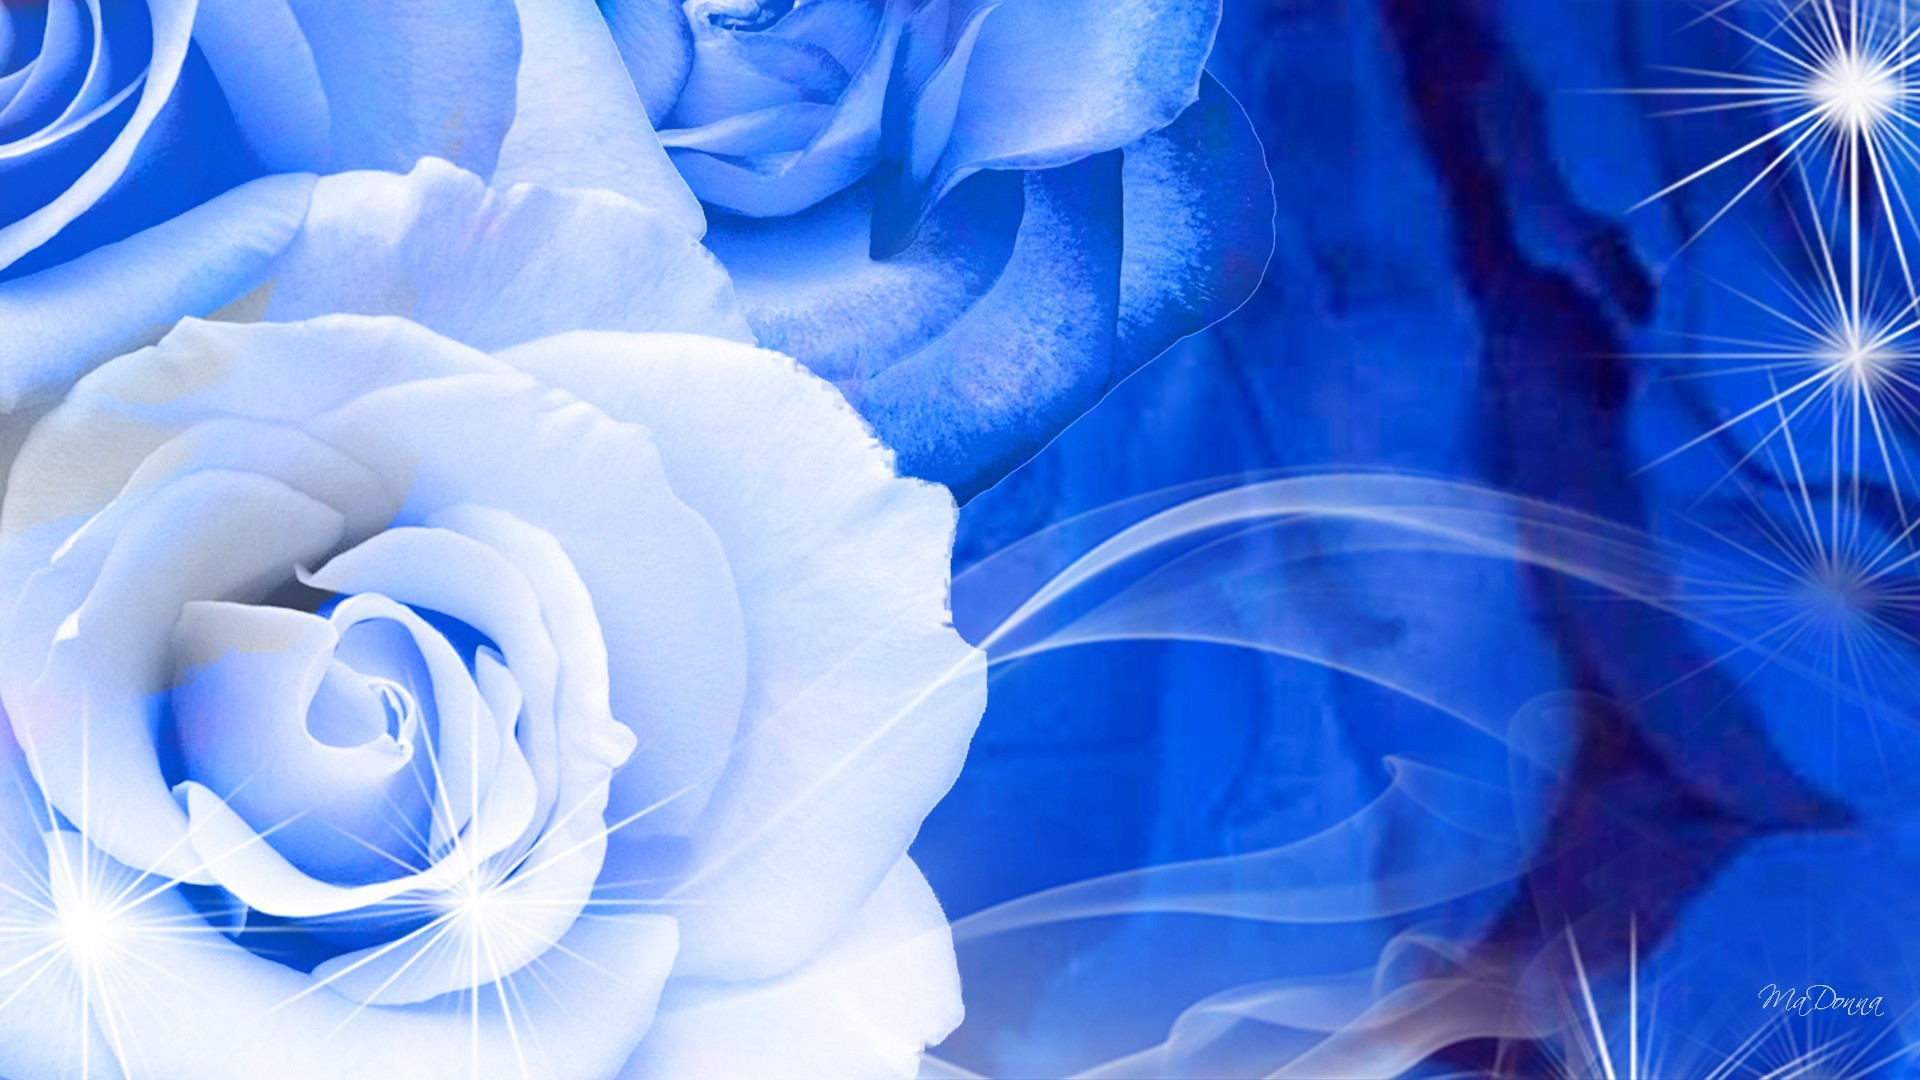 1920x1080 blue-and-white-rose-wallpaper-6-hd-wallpaper.jpg (1920×1080) | Flowers |  Pinterest | Blue wallpapers, Wallpaper and Flower wallpaper